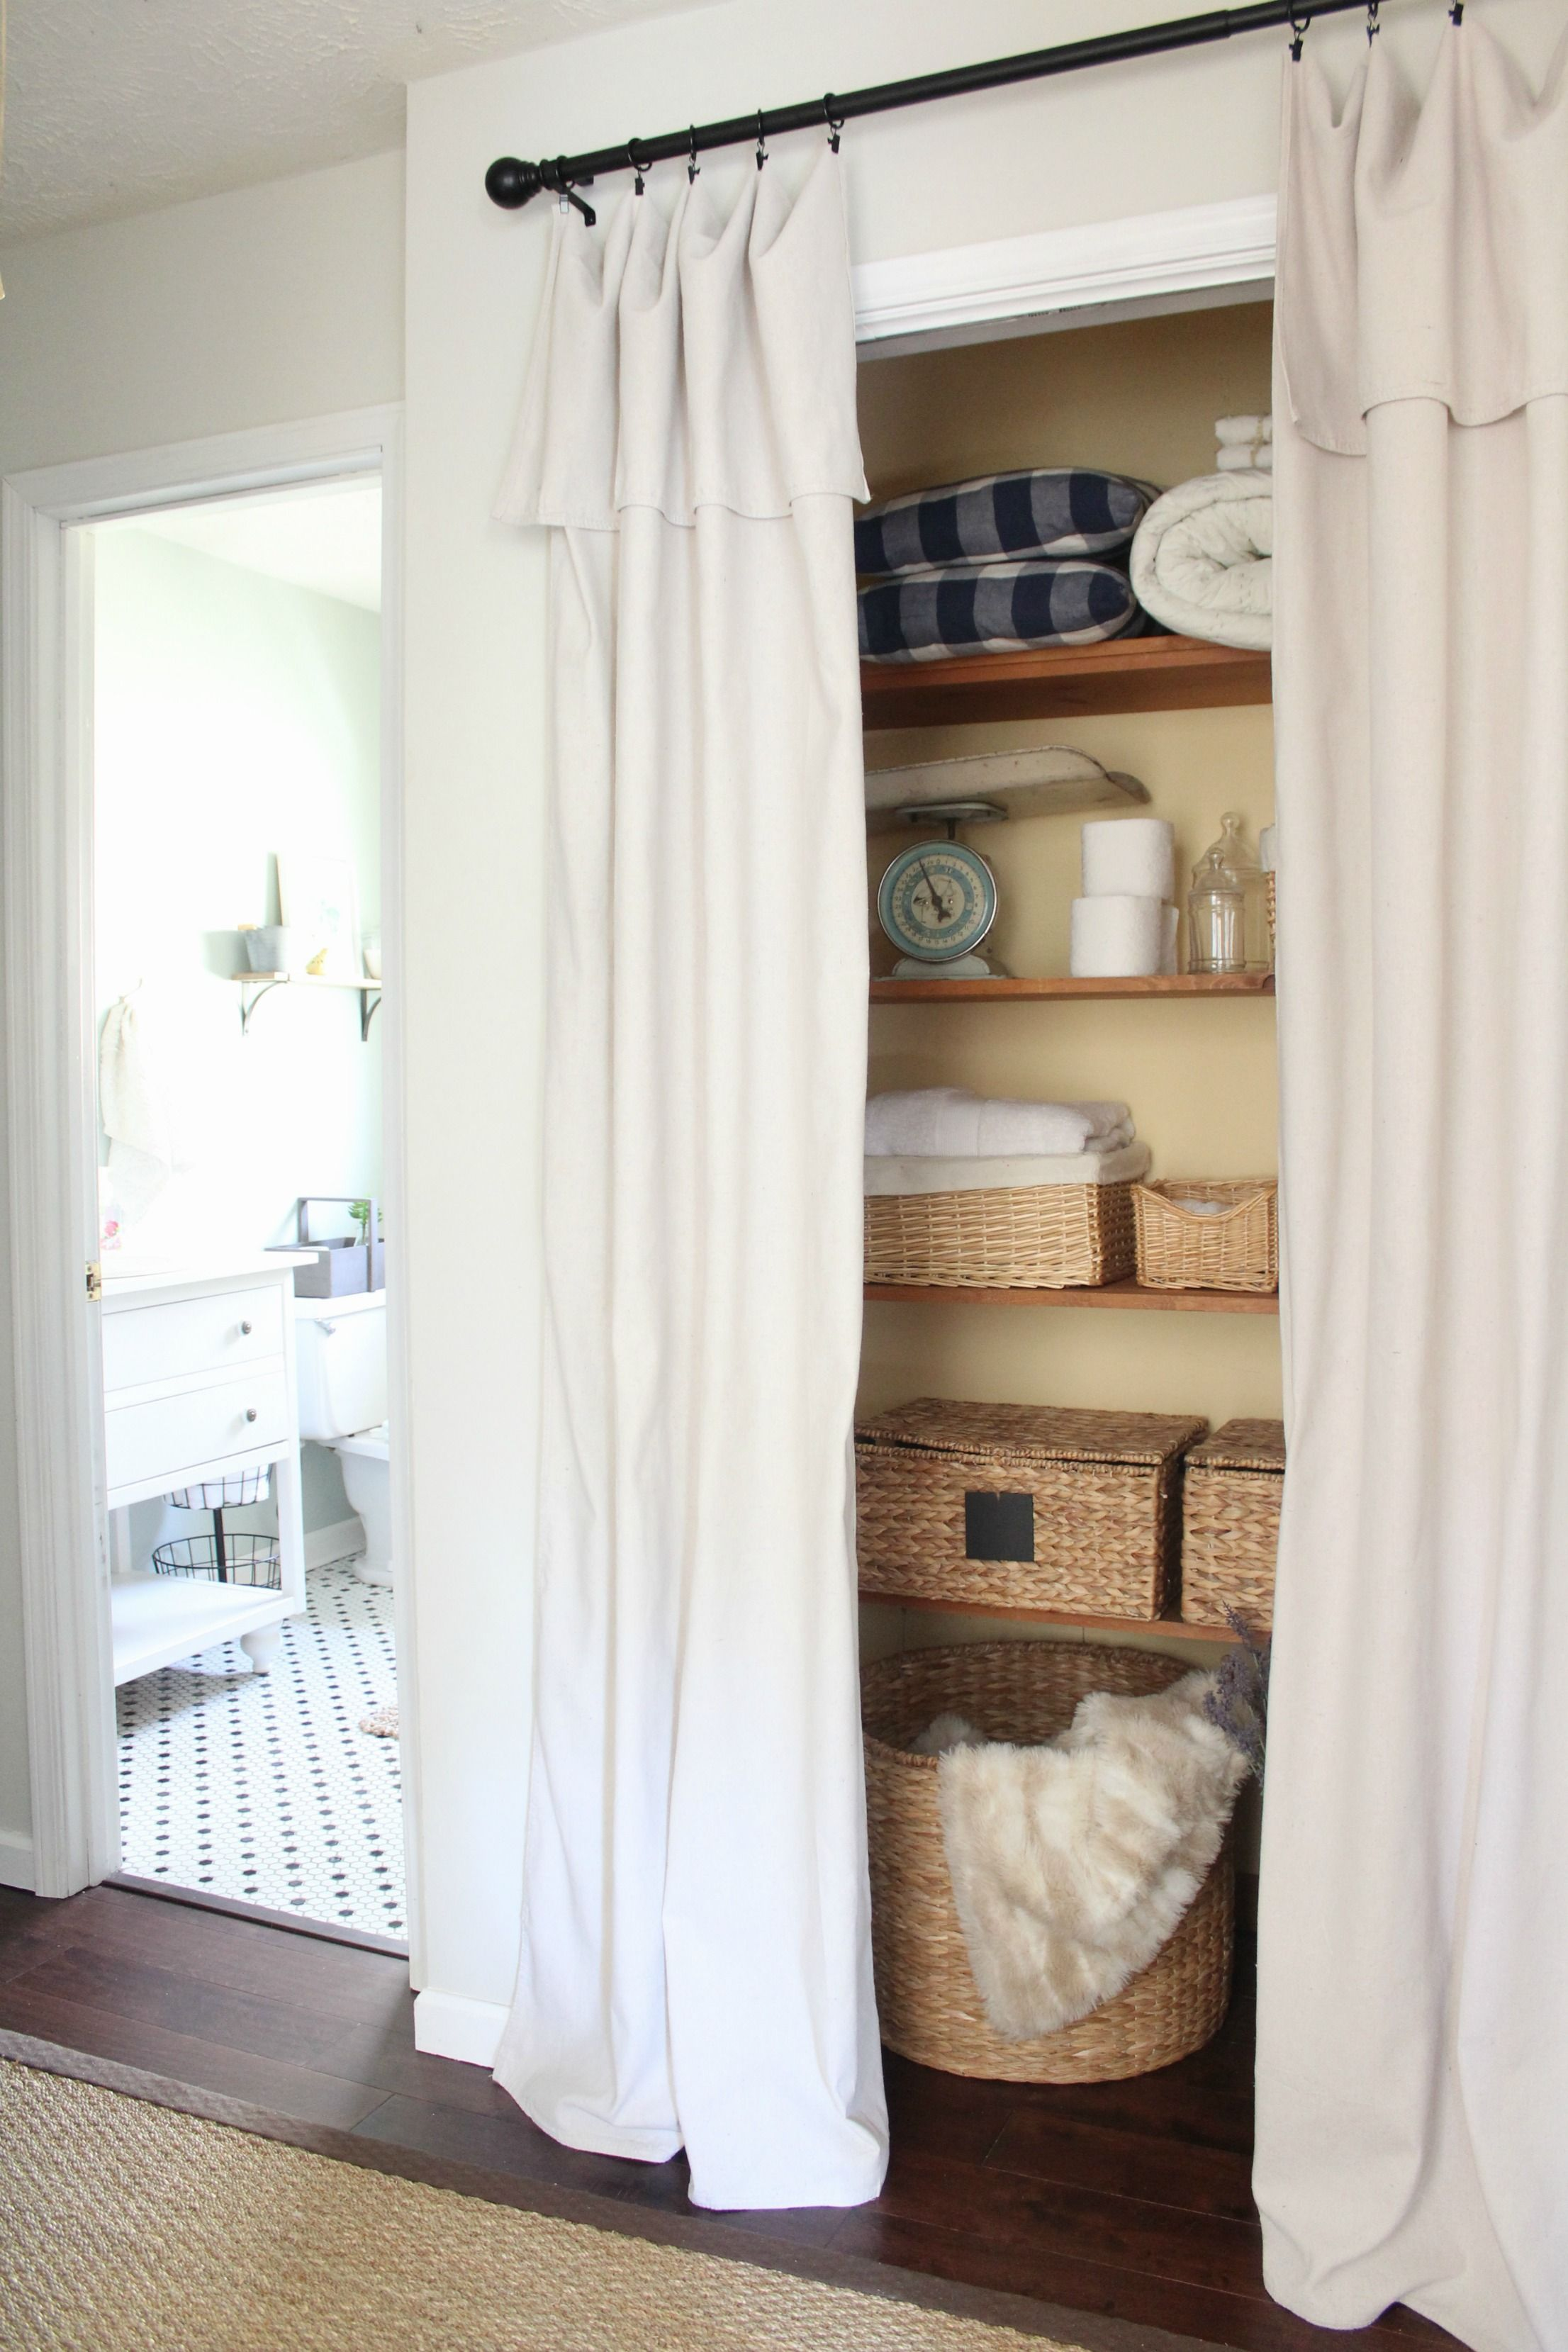 Shower curtain alternatives - Create A New Look For Your Room With These Closet Door Ideas